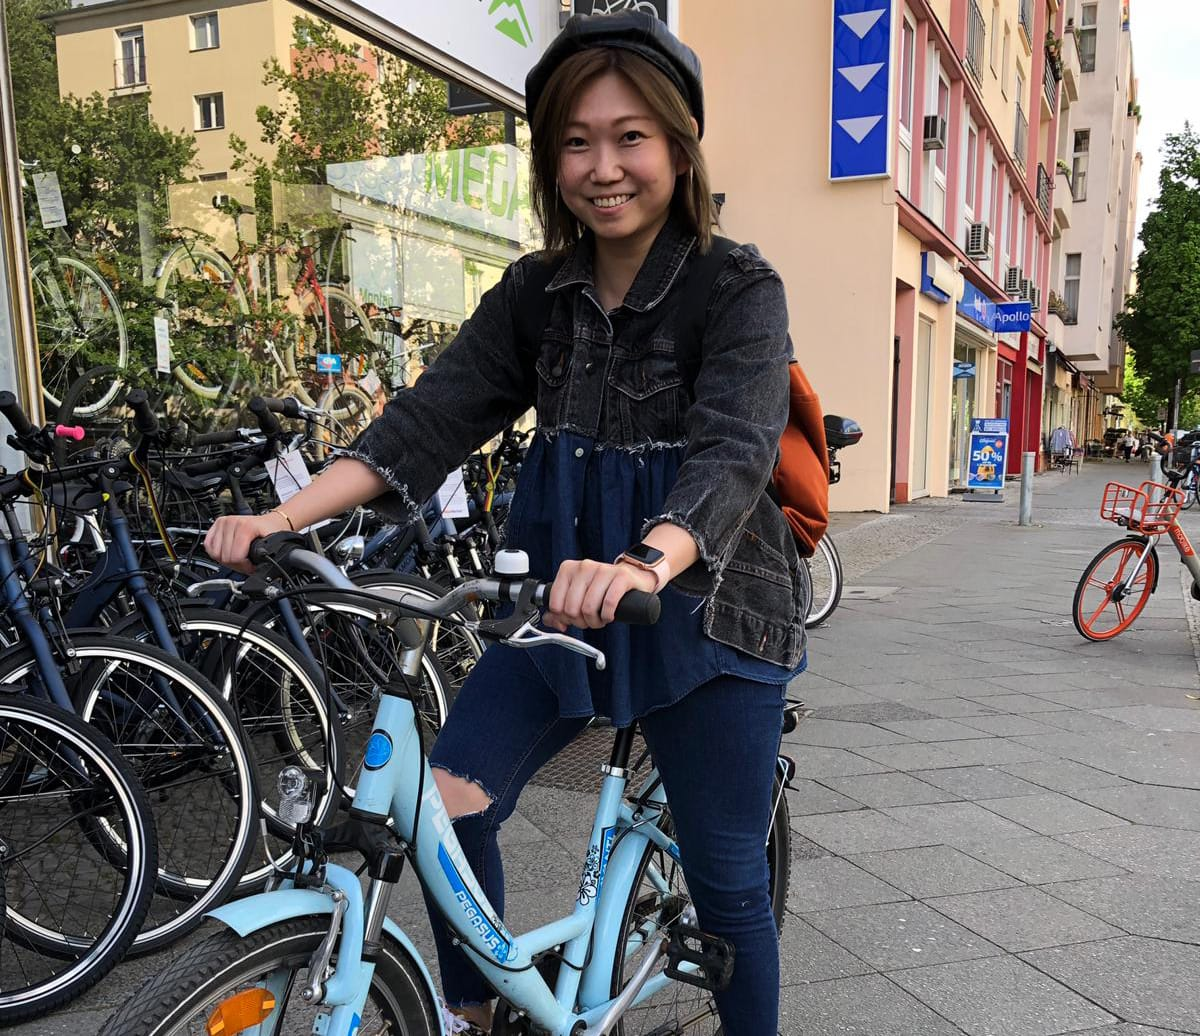 Berlin Film Residencies – Gilitte Leung, 2018 BERLIN AiR fellow, 1st day in Berlin with her bike Bilitte